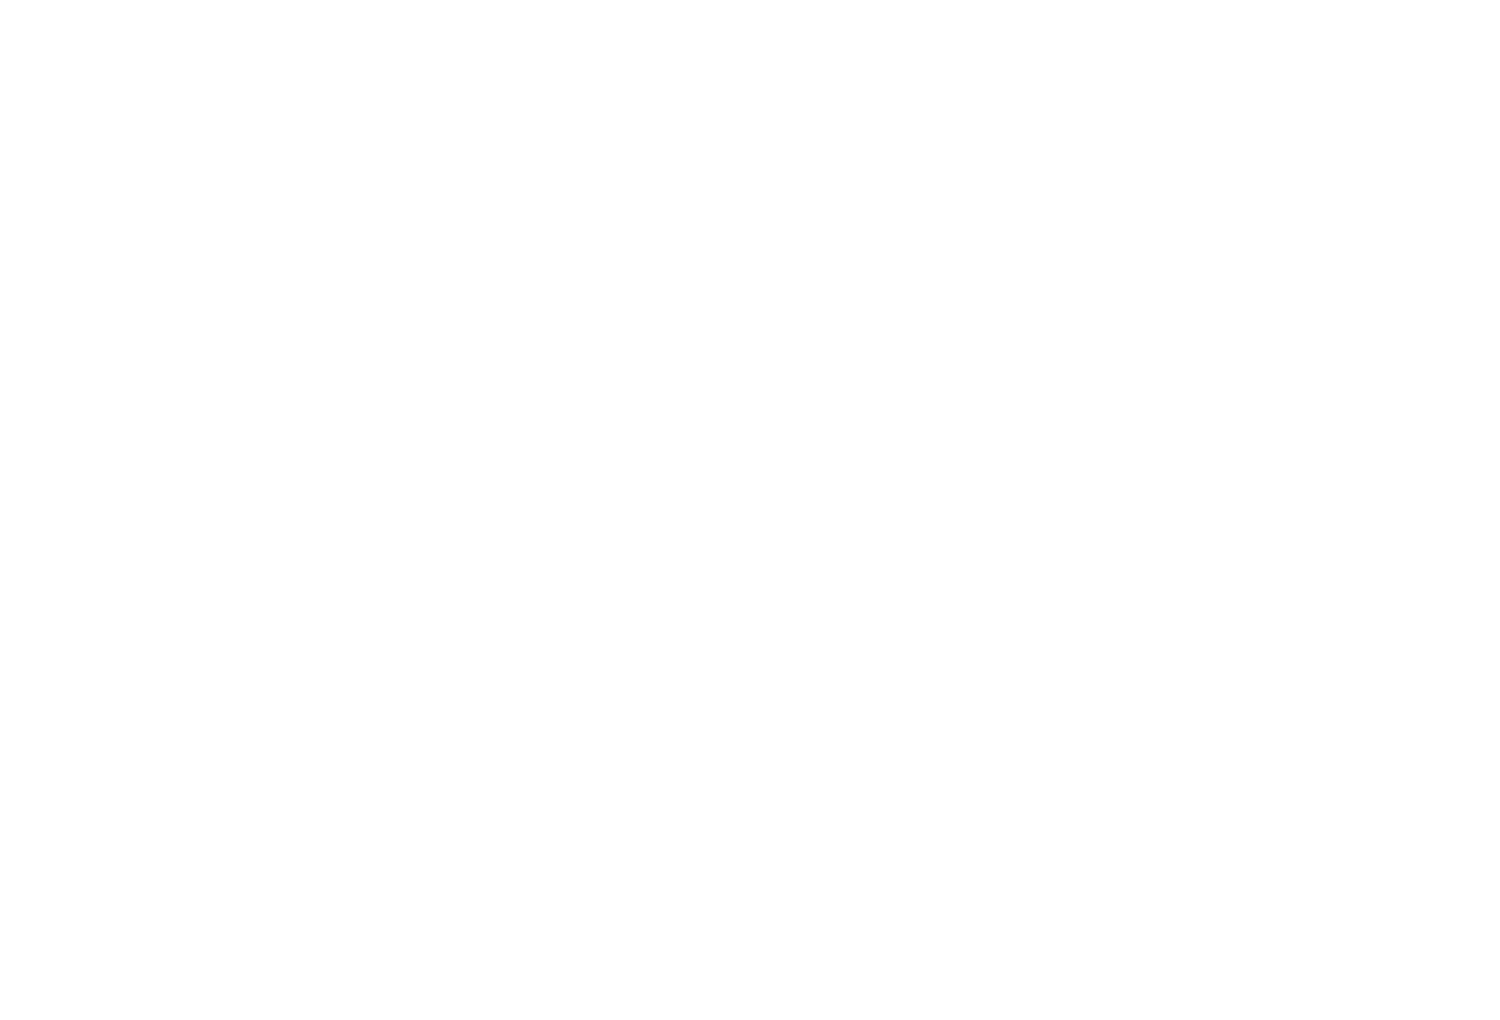 Young Musicians Workshop